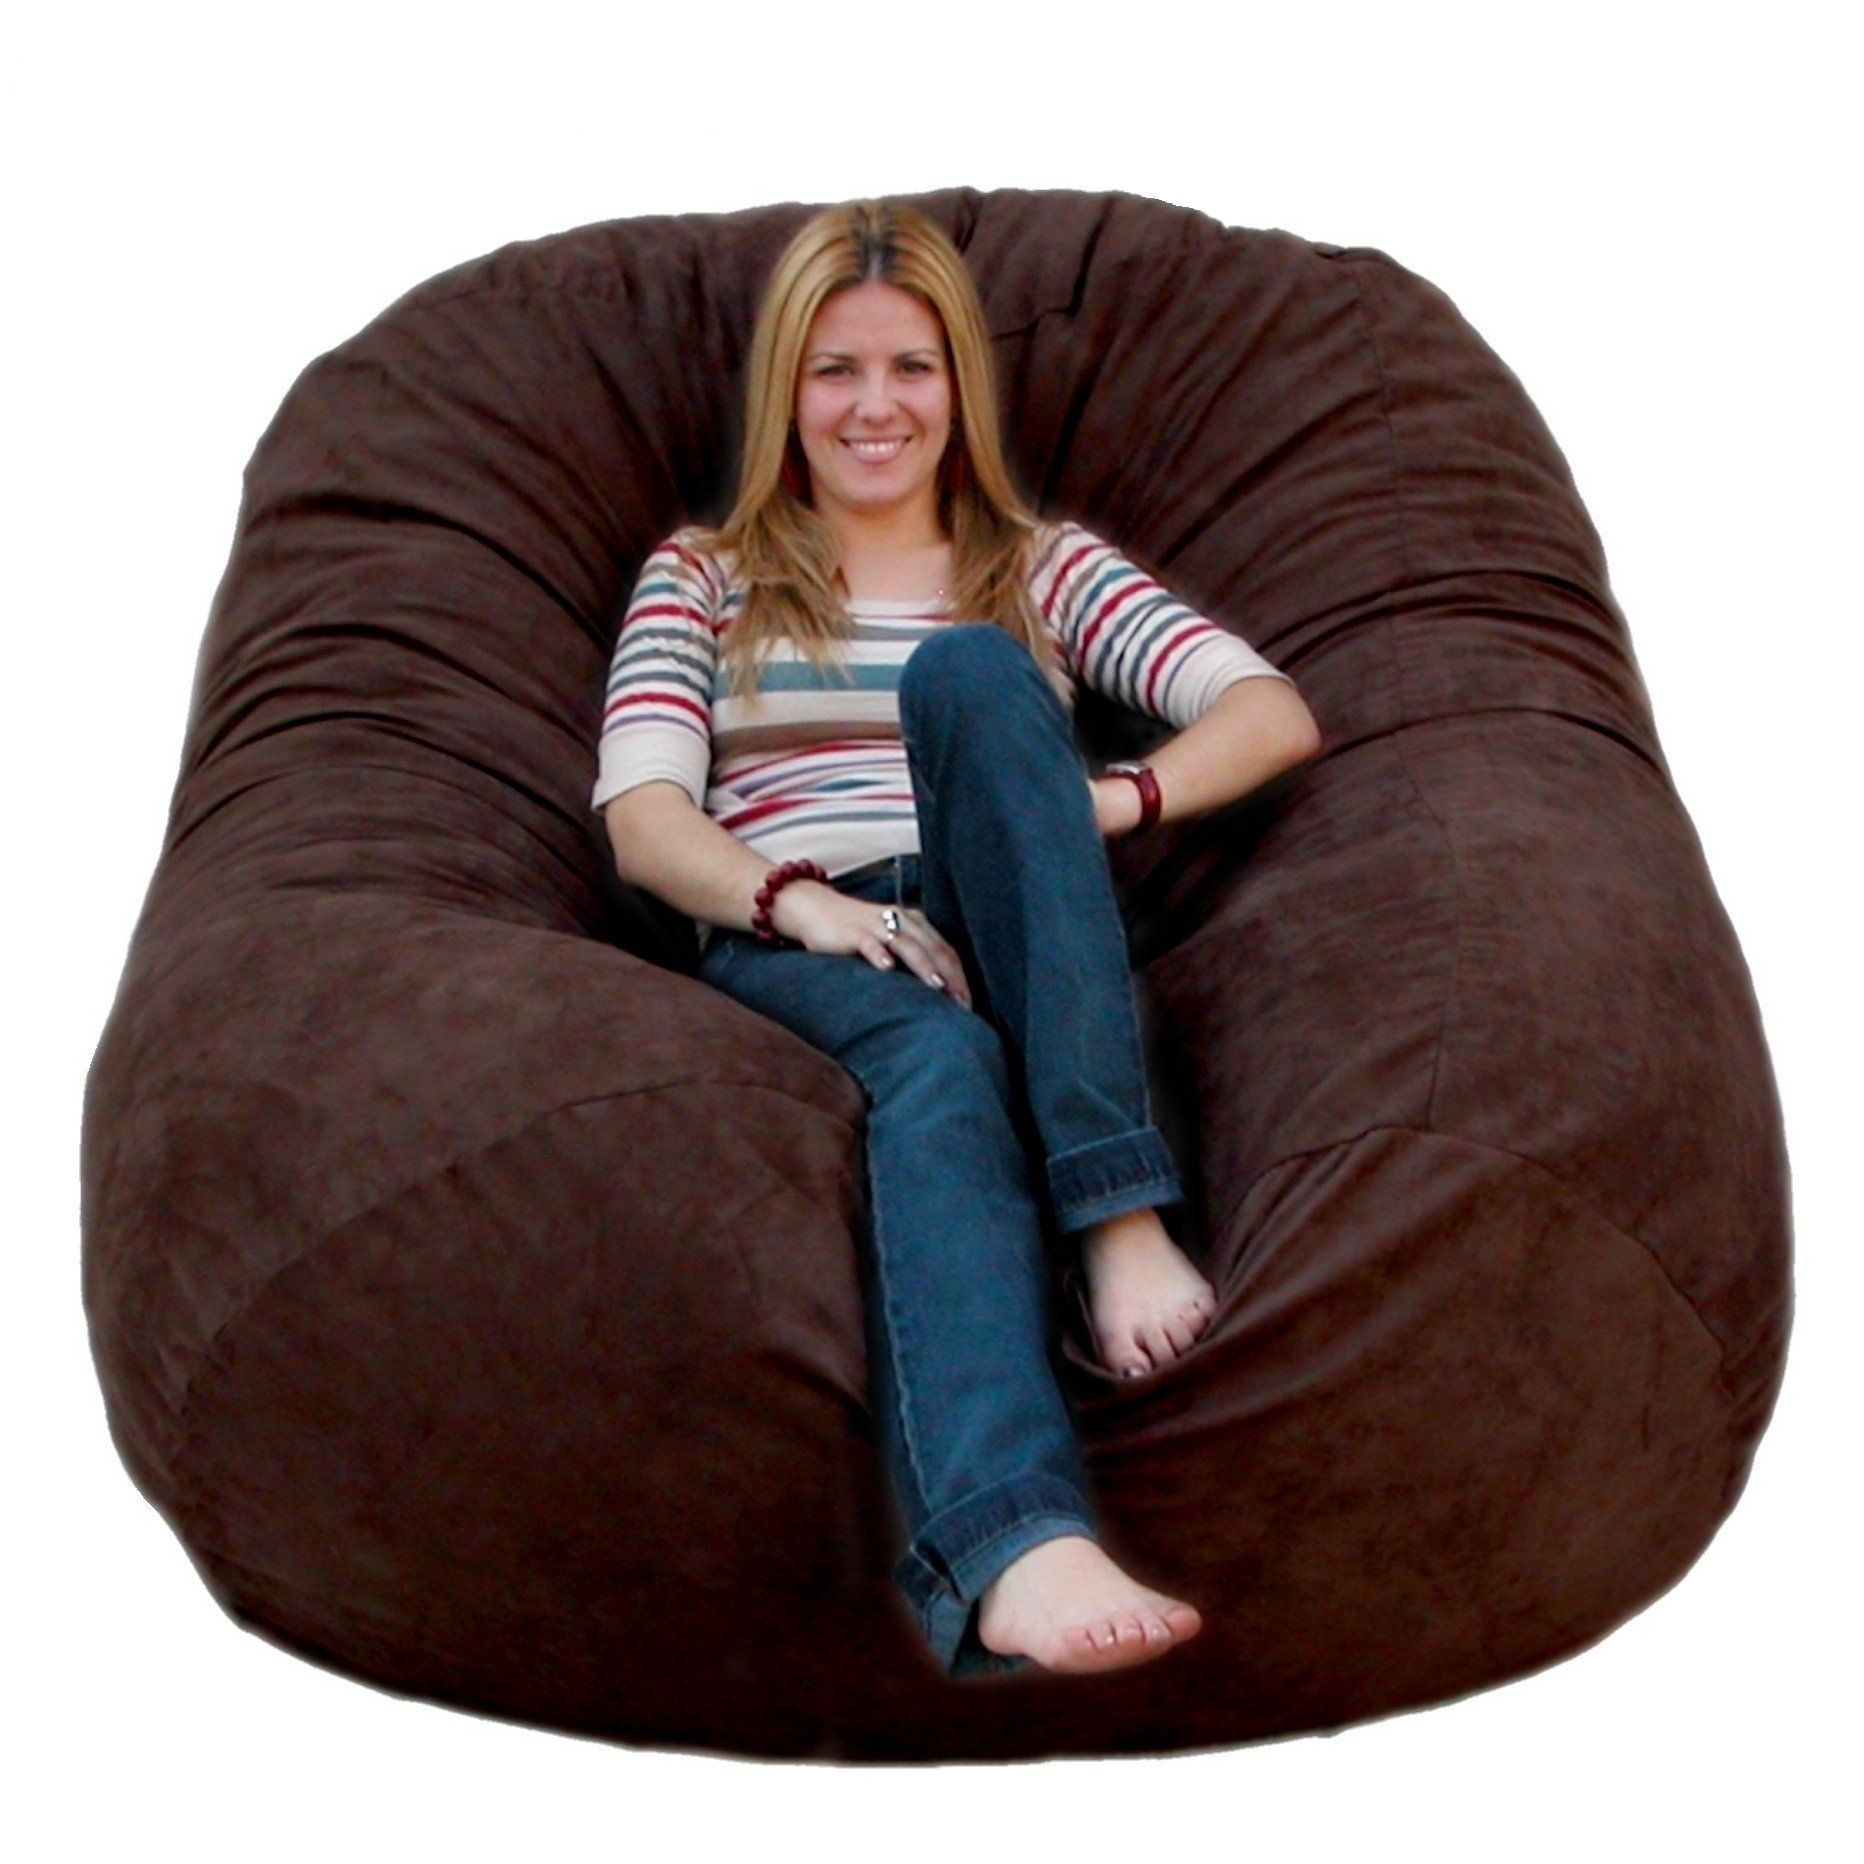 6 foot bean bag chair red patio cushions cozy sack feet large chocolate gifts